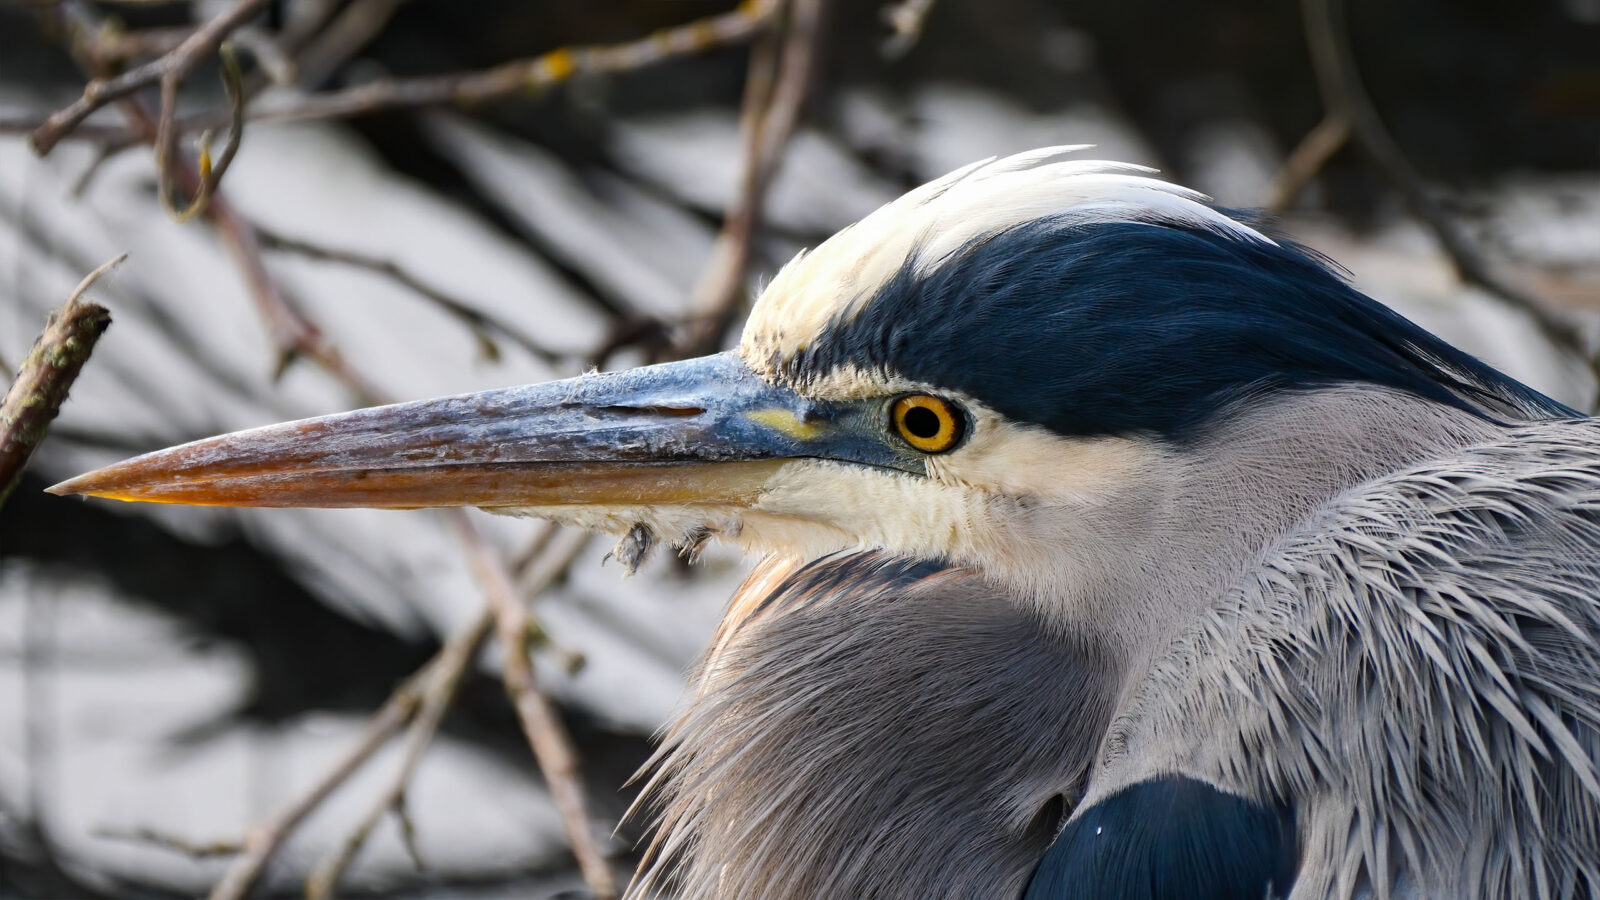 A great blue heron bird